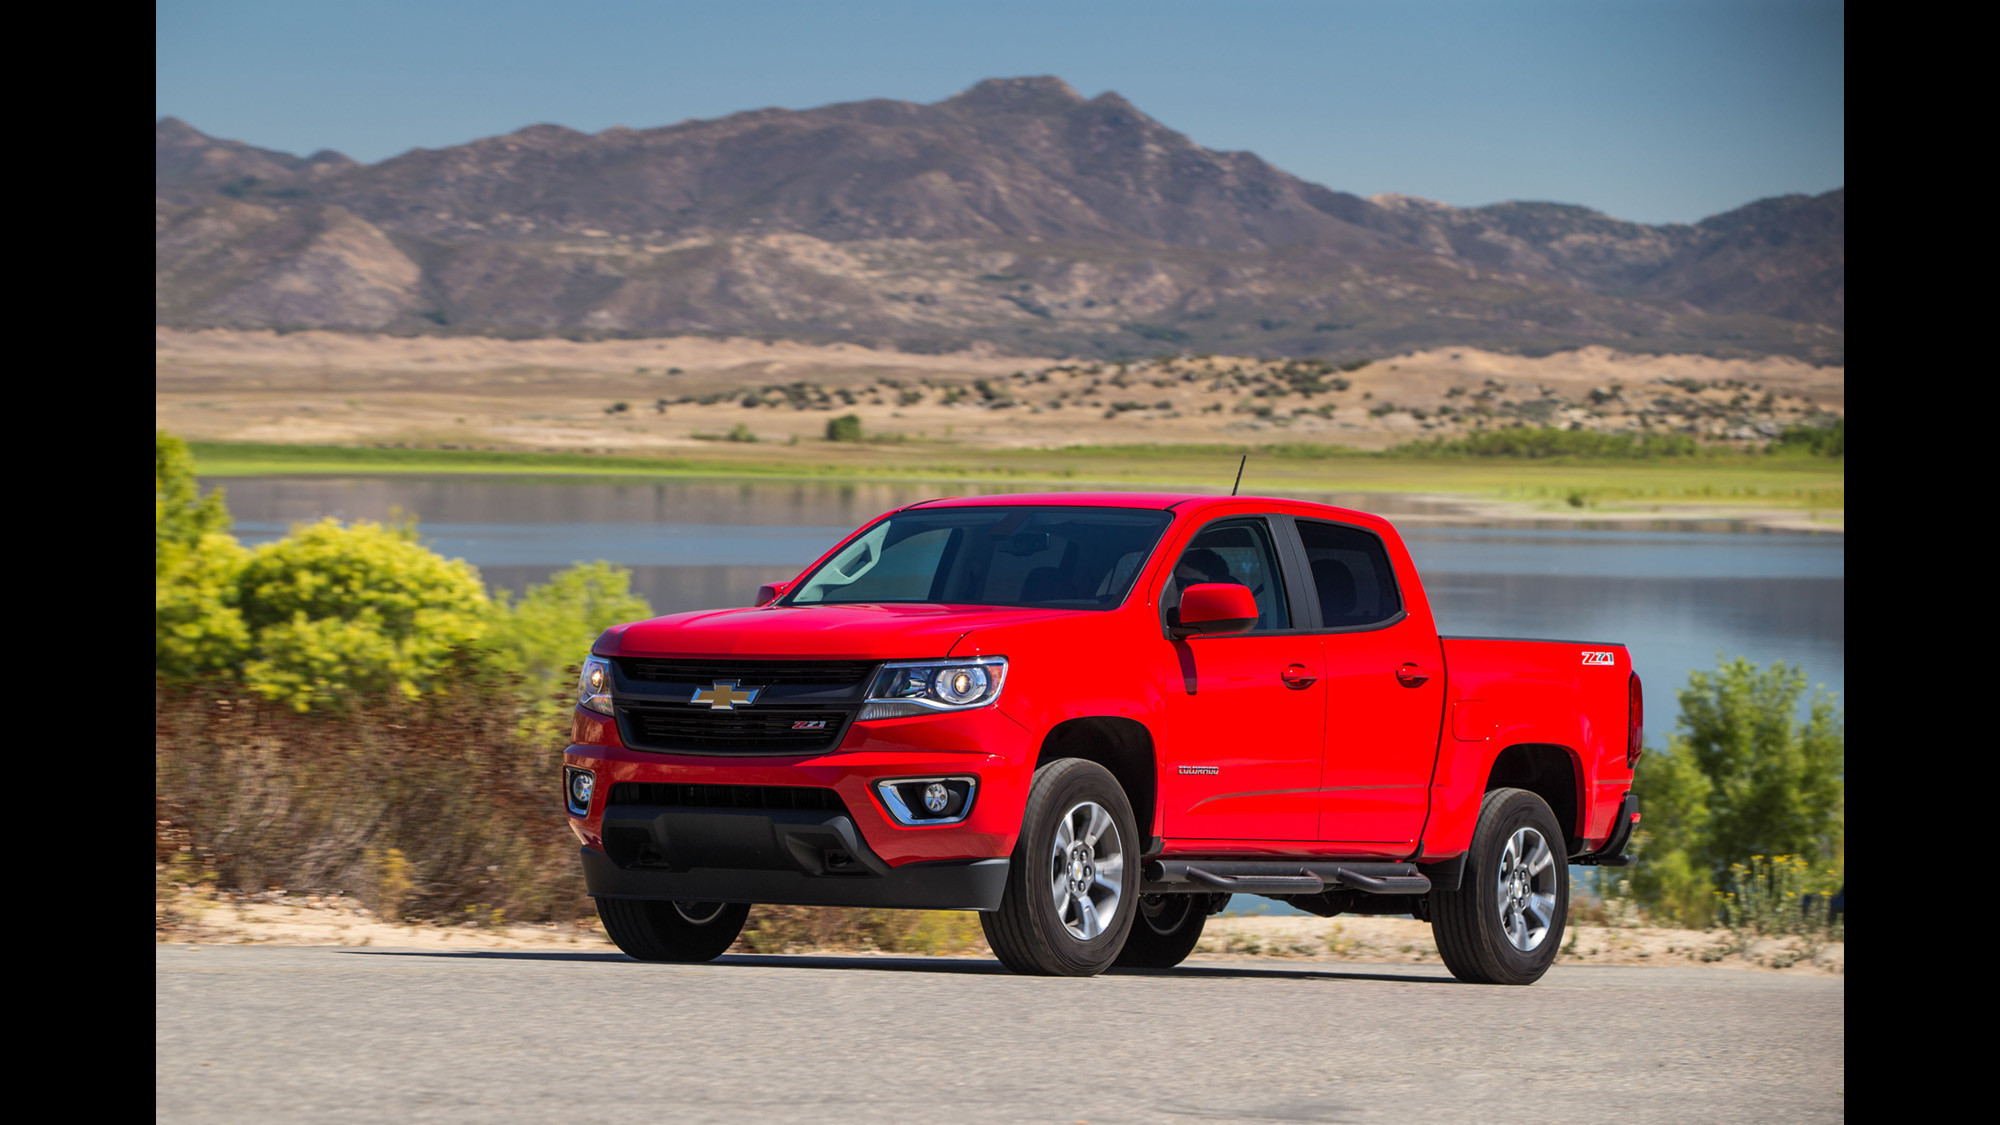 review all new chevy colorado gmc canyon add vigor to mid size truck segment la times. Black Bedroom Furniture Sets. Home Design Ideas